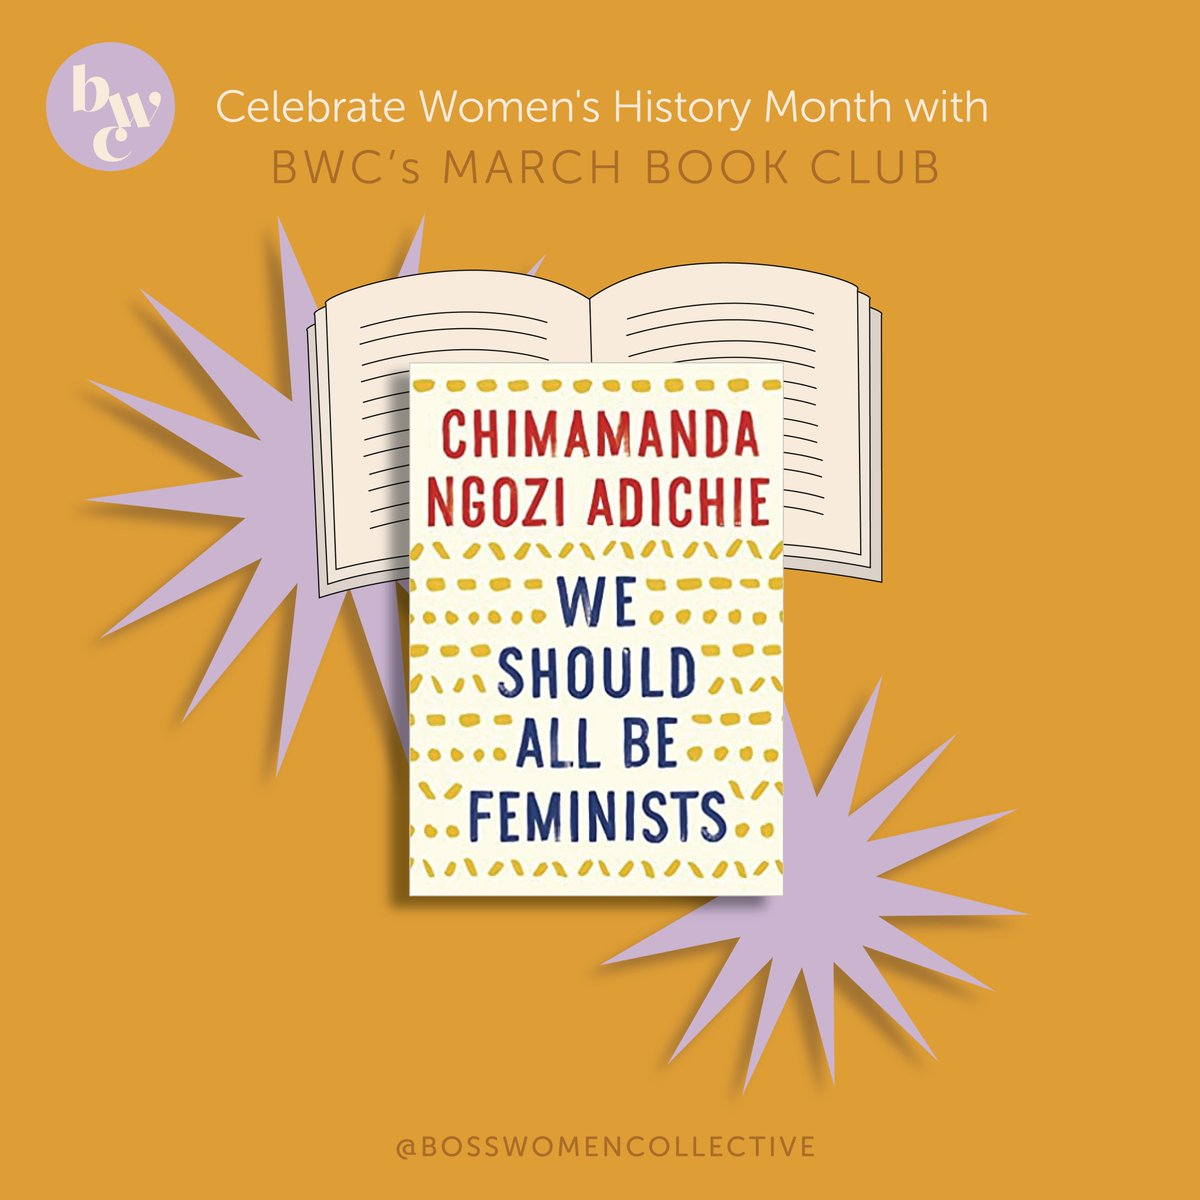 🥁 Cues Drum Roll 🥁 We are SO excited to announce our March Book Club 📖 in celebration of #WomensHistoryMonth which will be 'We Should All Be Feminists' by Chimamanda Ngozi Adichie 💕   Sign-up before 3/5 to join us! 📚😍